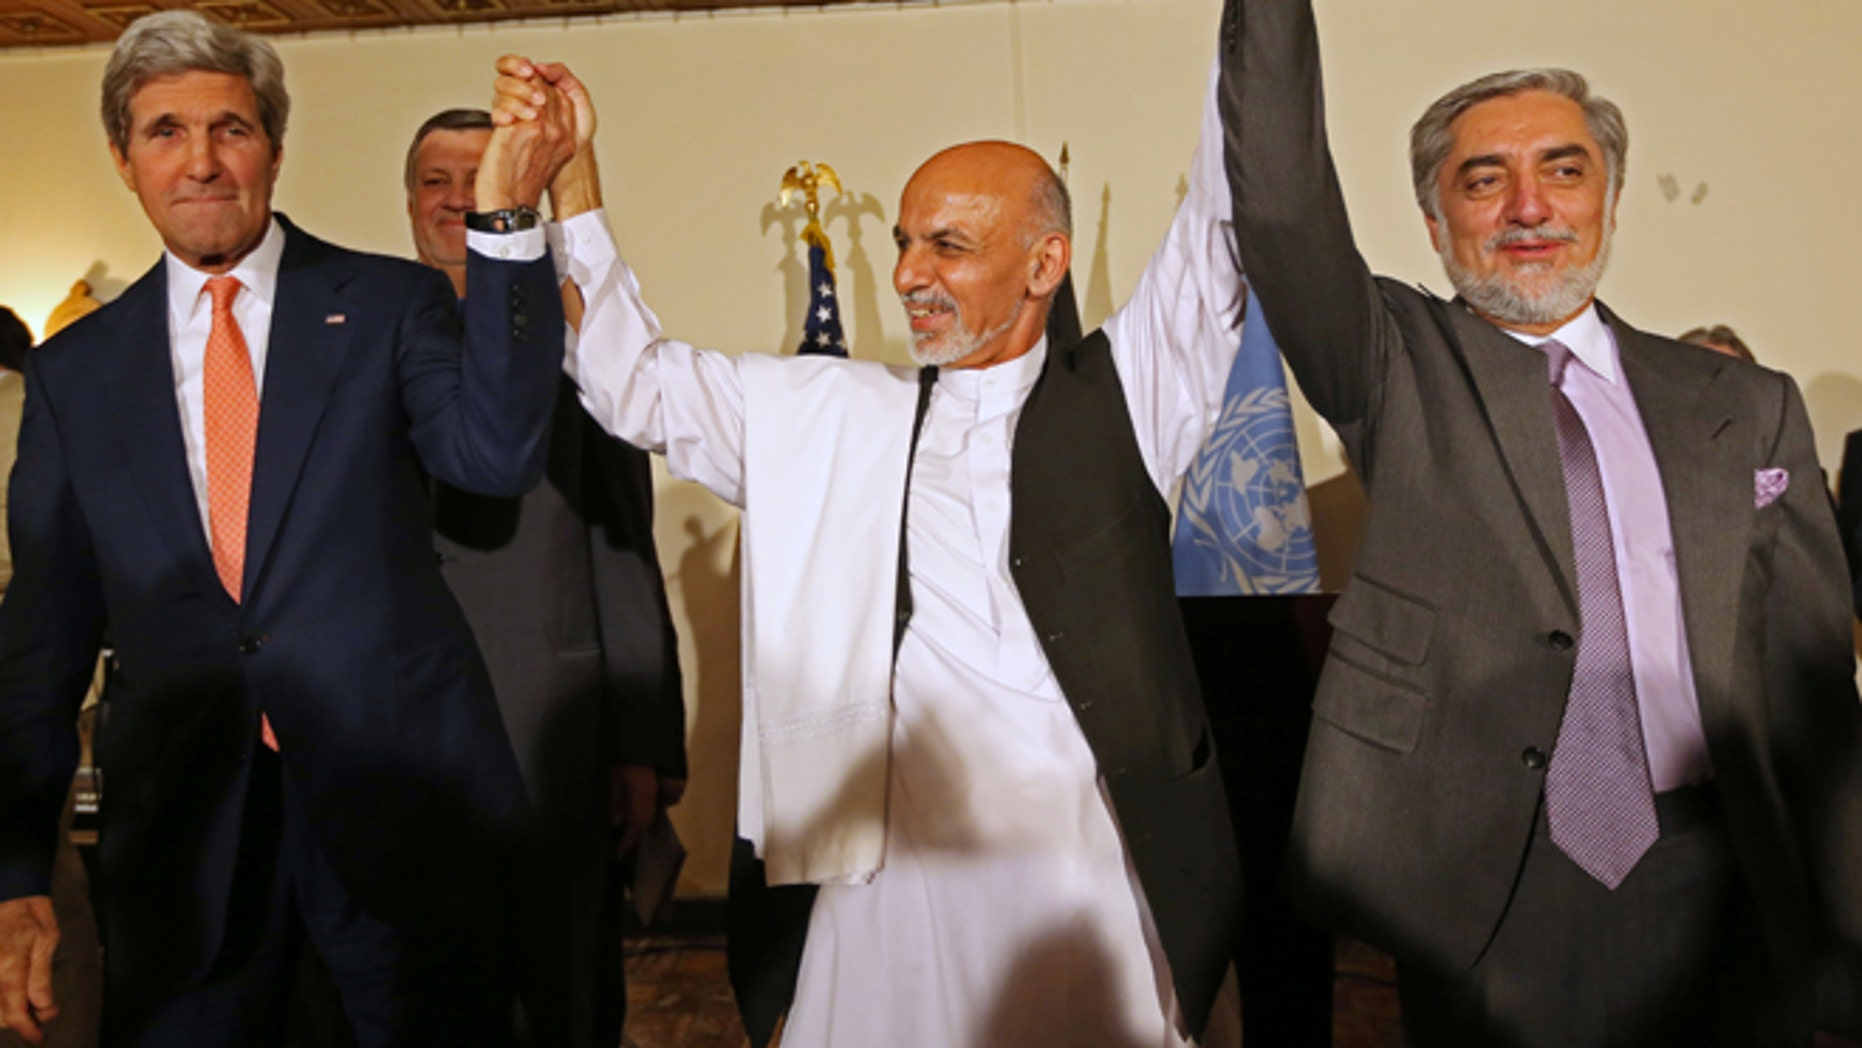 Afghanistan presidential election in crisis after candidate